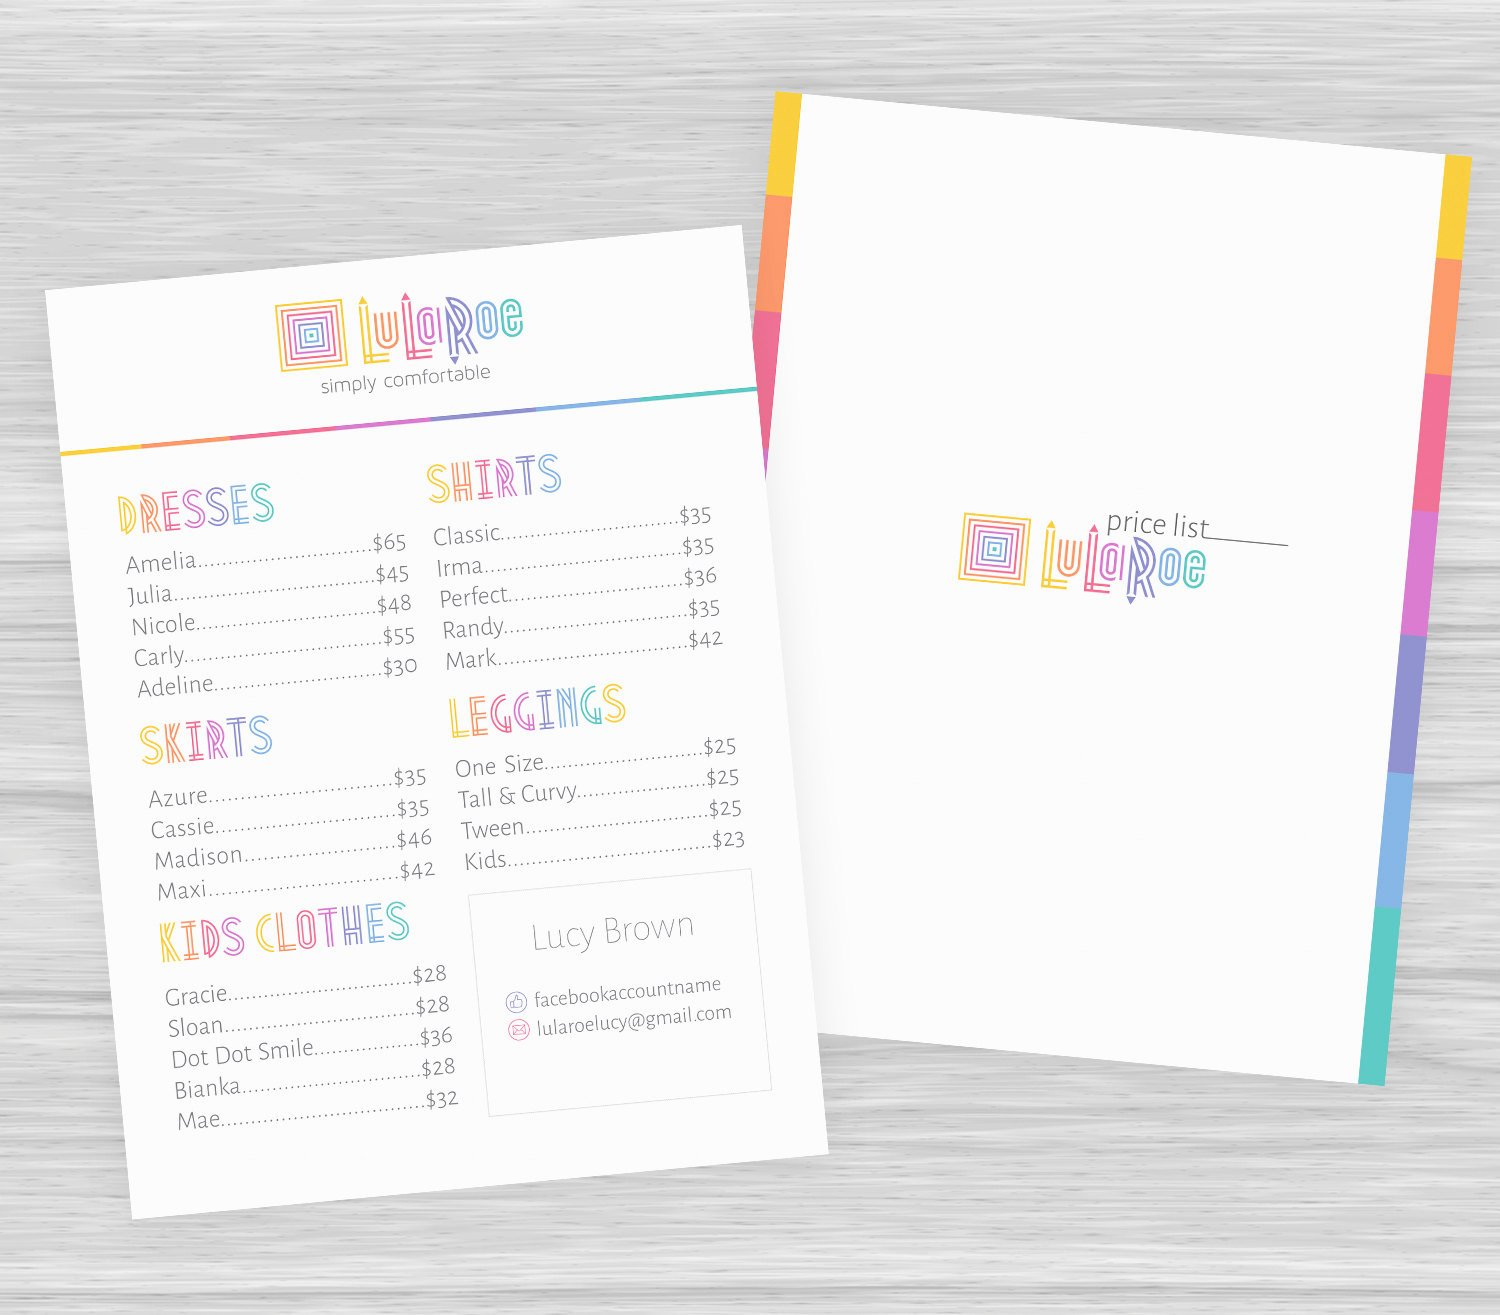 Lularoe Business Plan Template Fresh Free Customize Lularoe Price List Lularoe Pricing Guide by